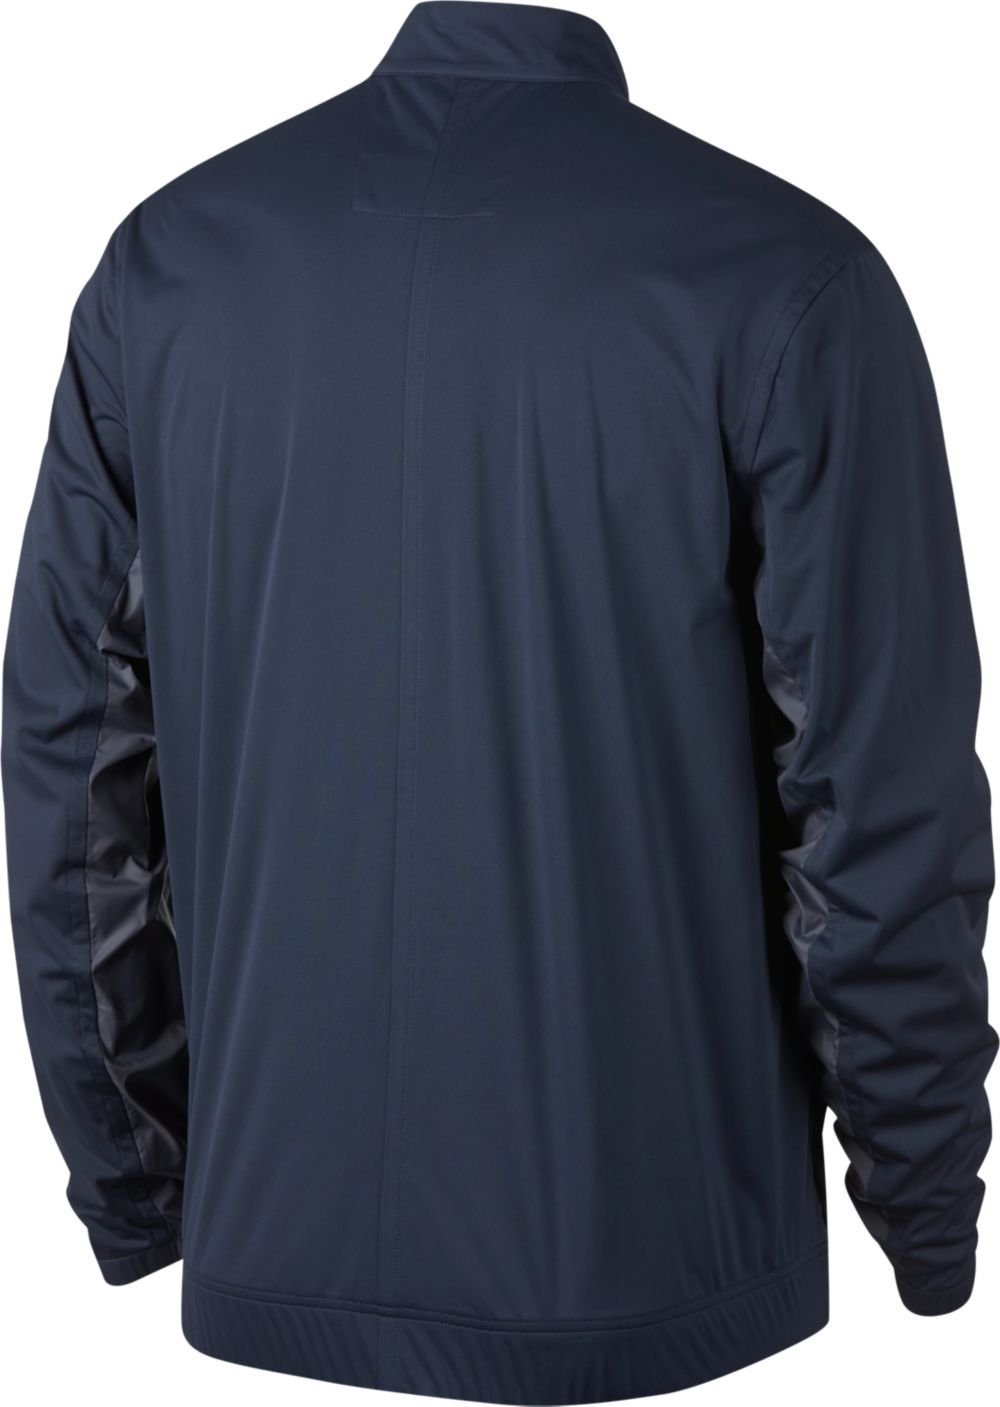 Amazon.com: Nike Shield Full Zip Core - Chaqueta de golf ...